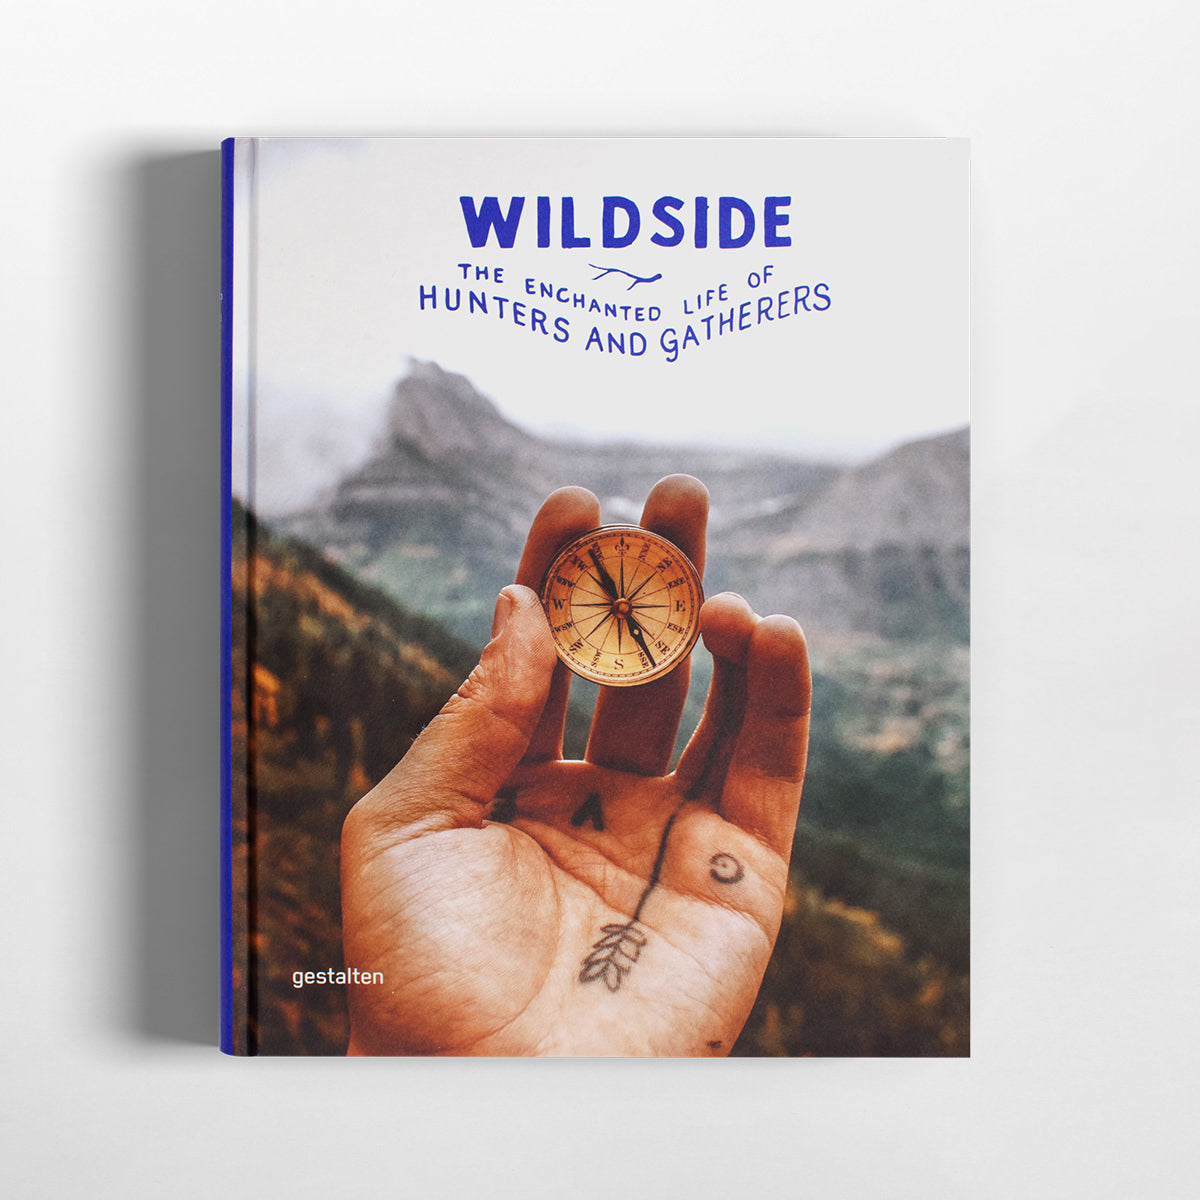 Wildside the enchanted life of hunters and gatherers